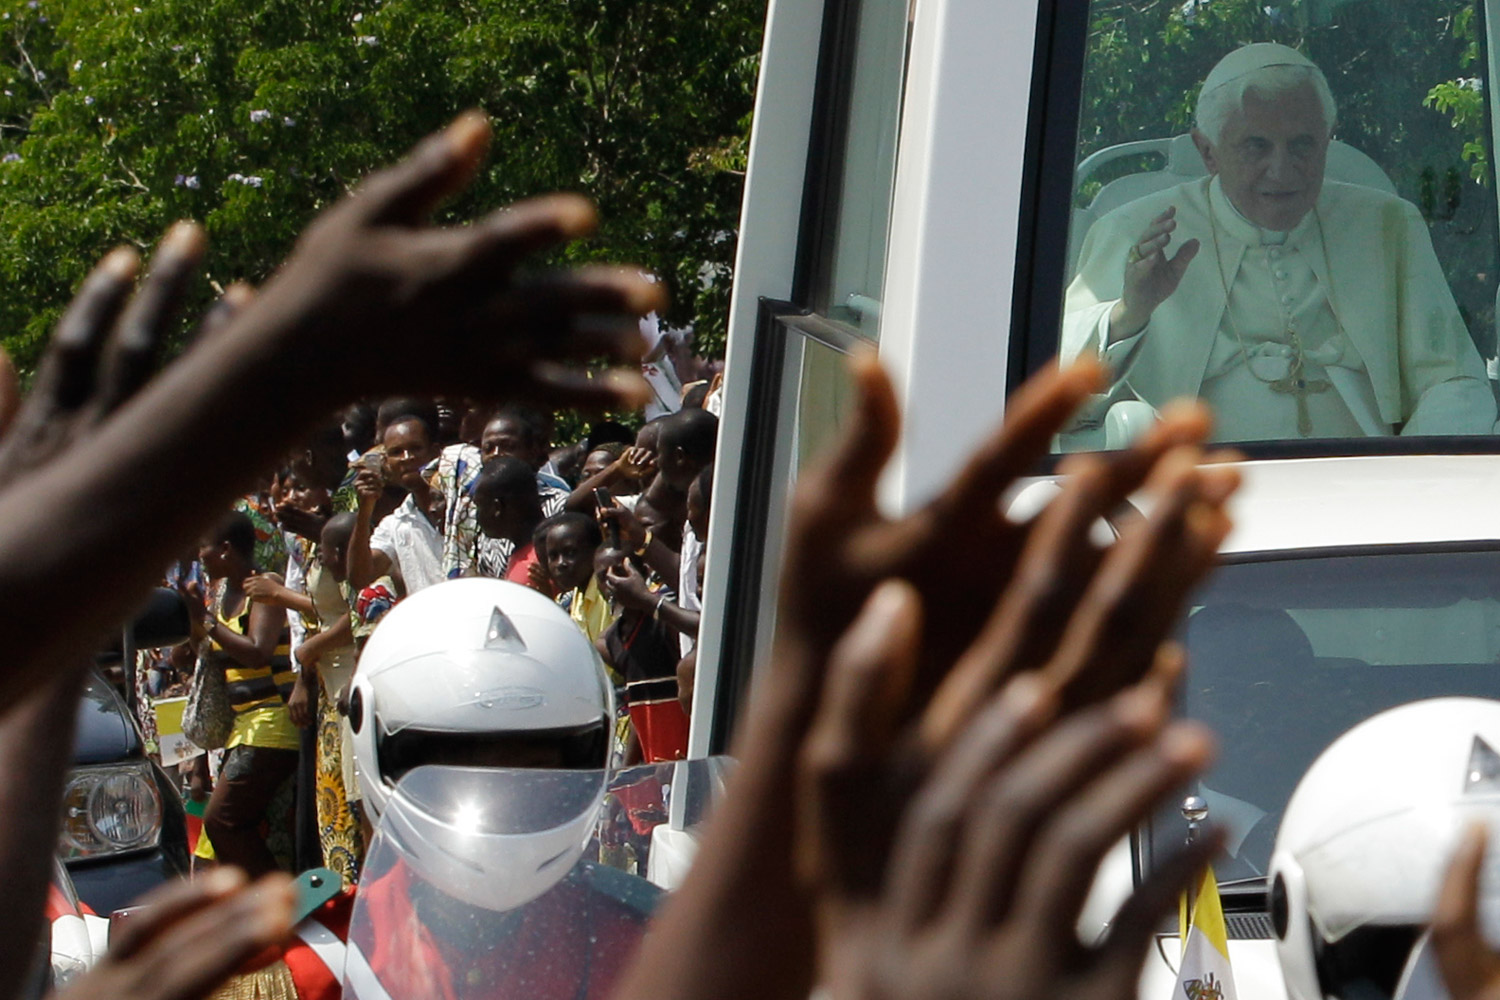 November 19, 2011. Pope Benedict XVI waves to the Catholic faithful as he arrives at the basilica in Ouidah, Benin. Pope Benedict XVI called on Africa's leaders to stop depriving their people of hope and to govern responsibly, just hours before he planned to unveil a pastoral guide for the continent which attempts to use church doctrine to address Africa's problems.